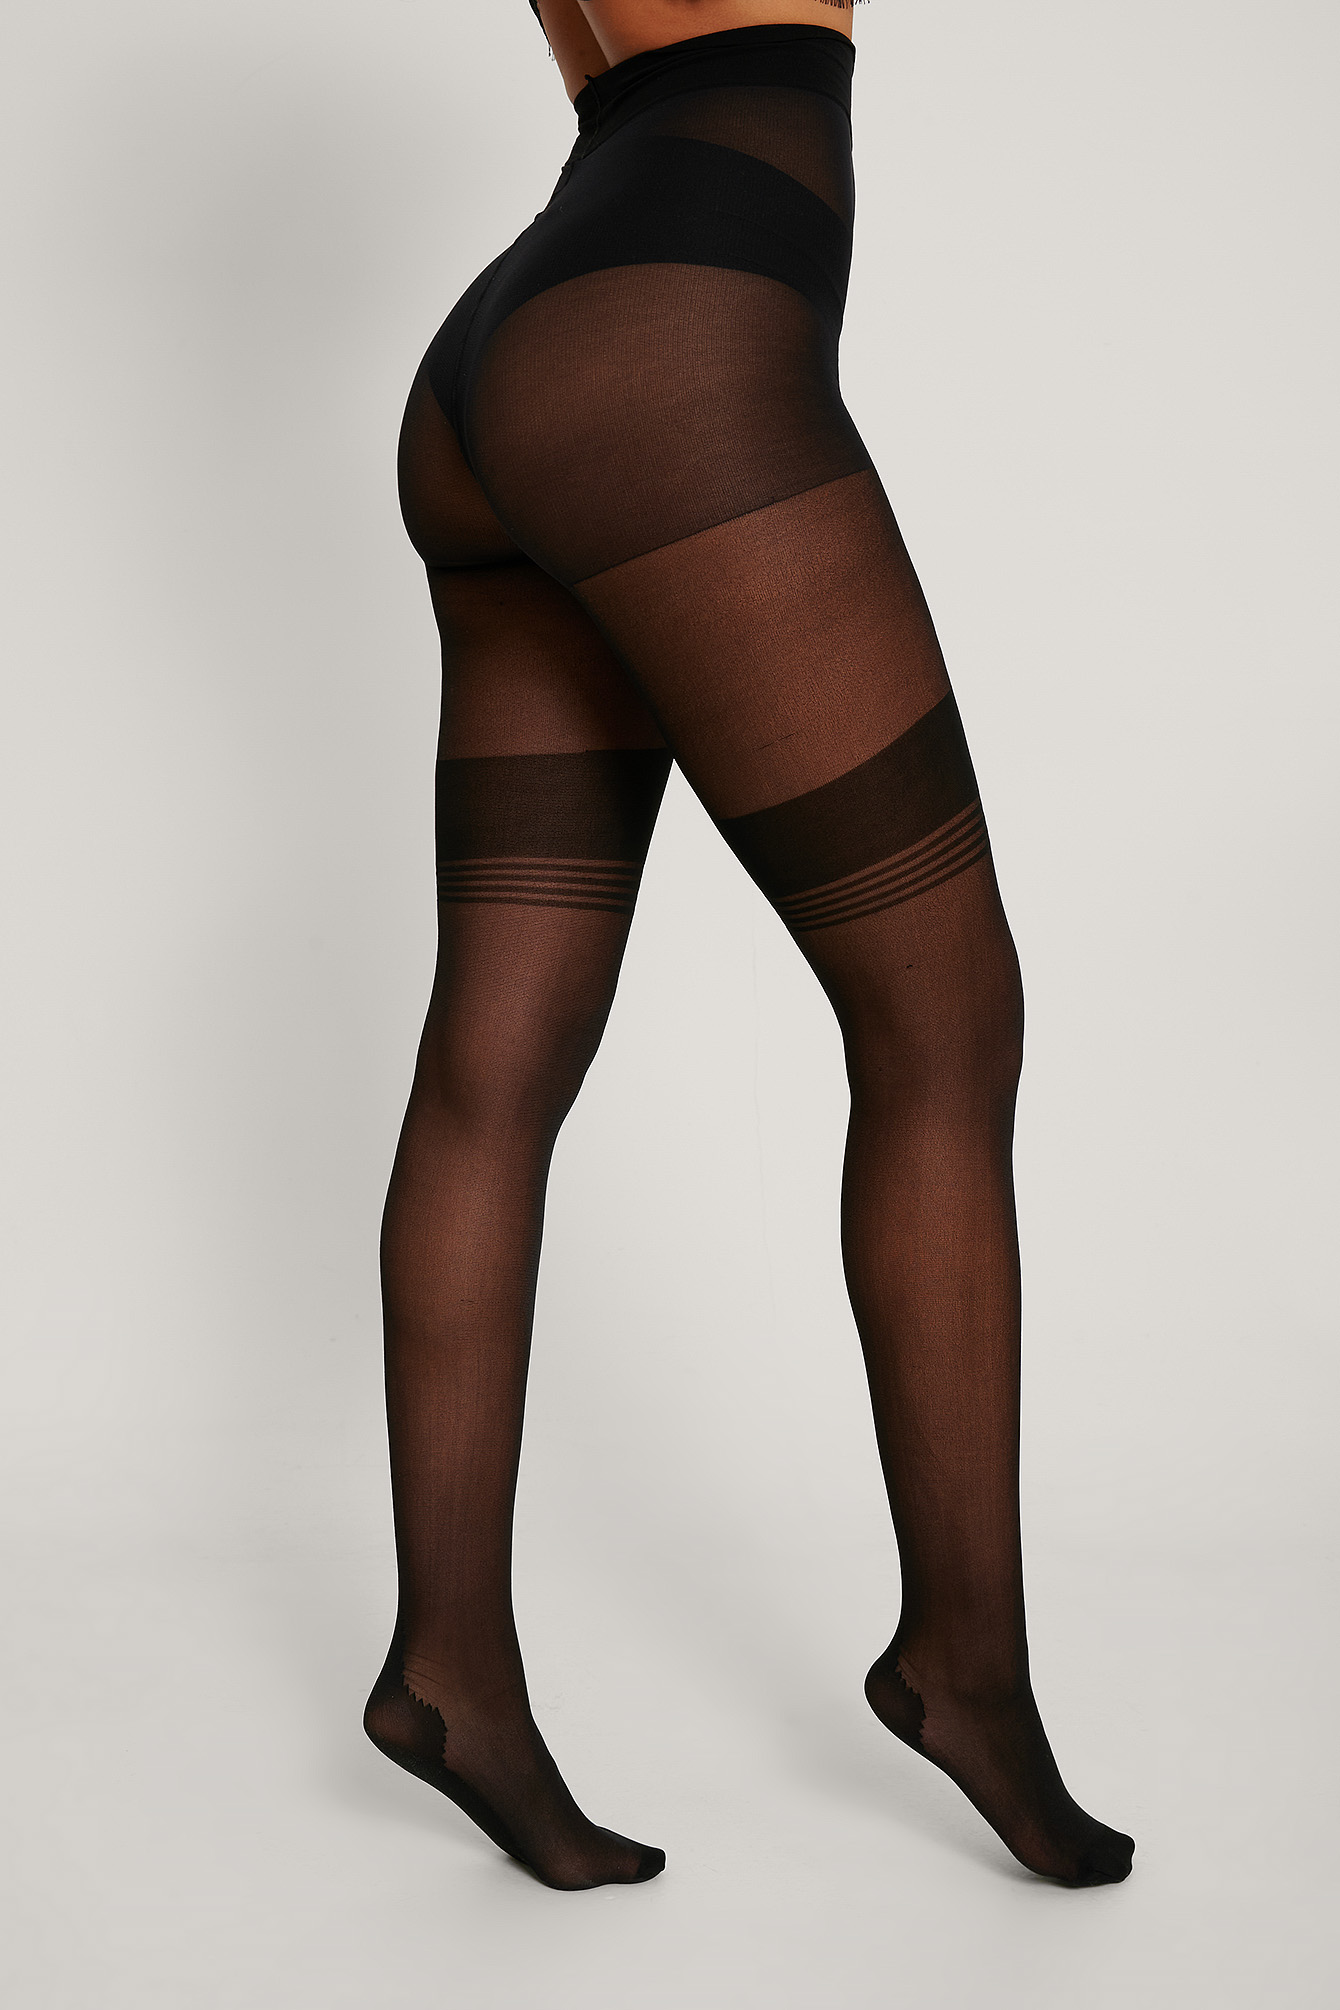 Black Full Length Detail Tights 25 DEN